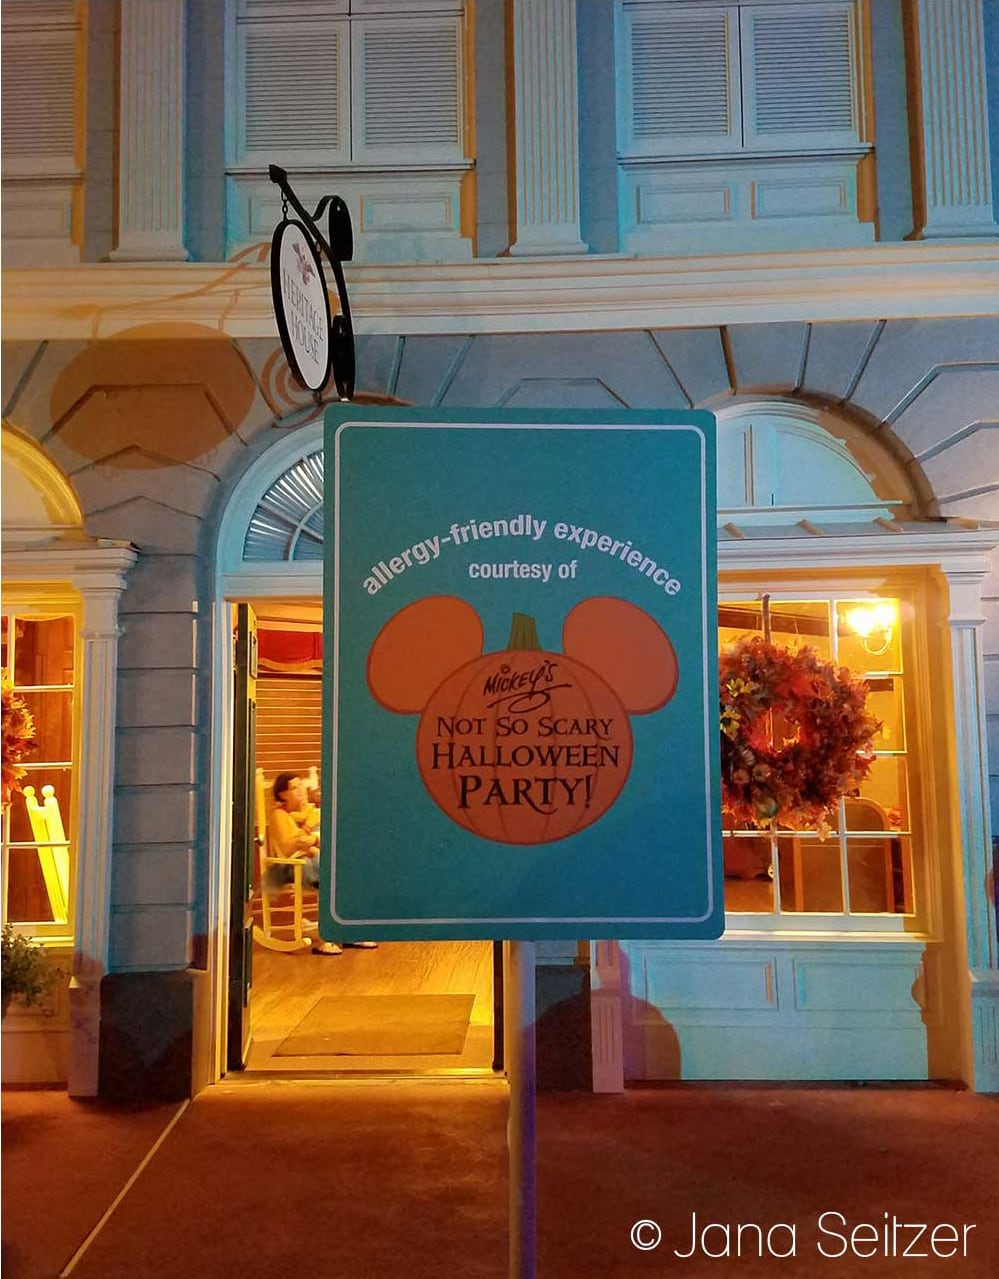 How to Have an Allergy-Friendly Treats at Mickey's Not-So-Scary Halloween Party - allergy-friendly sign